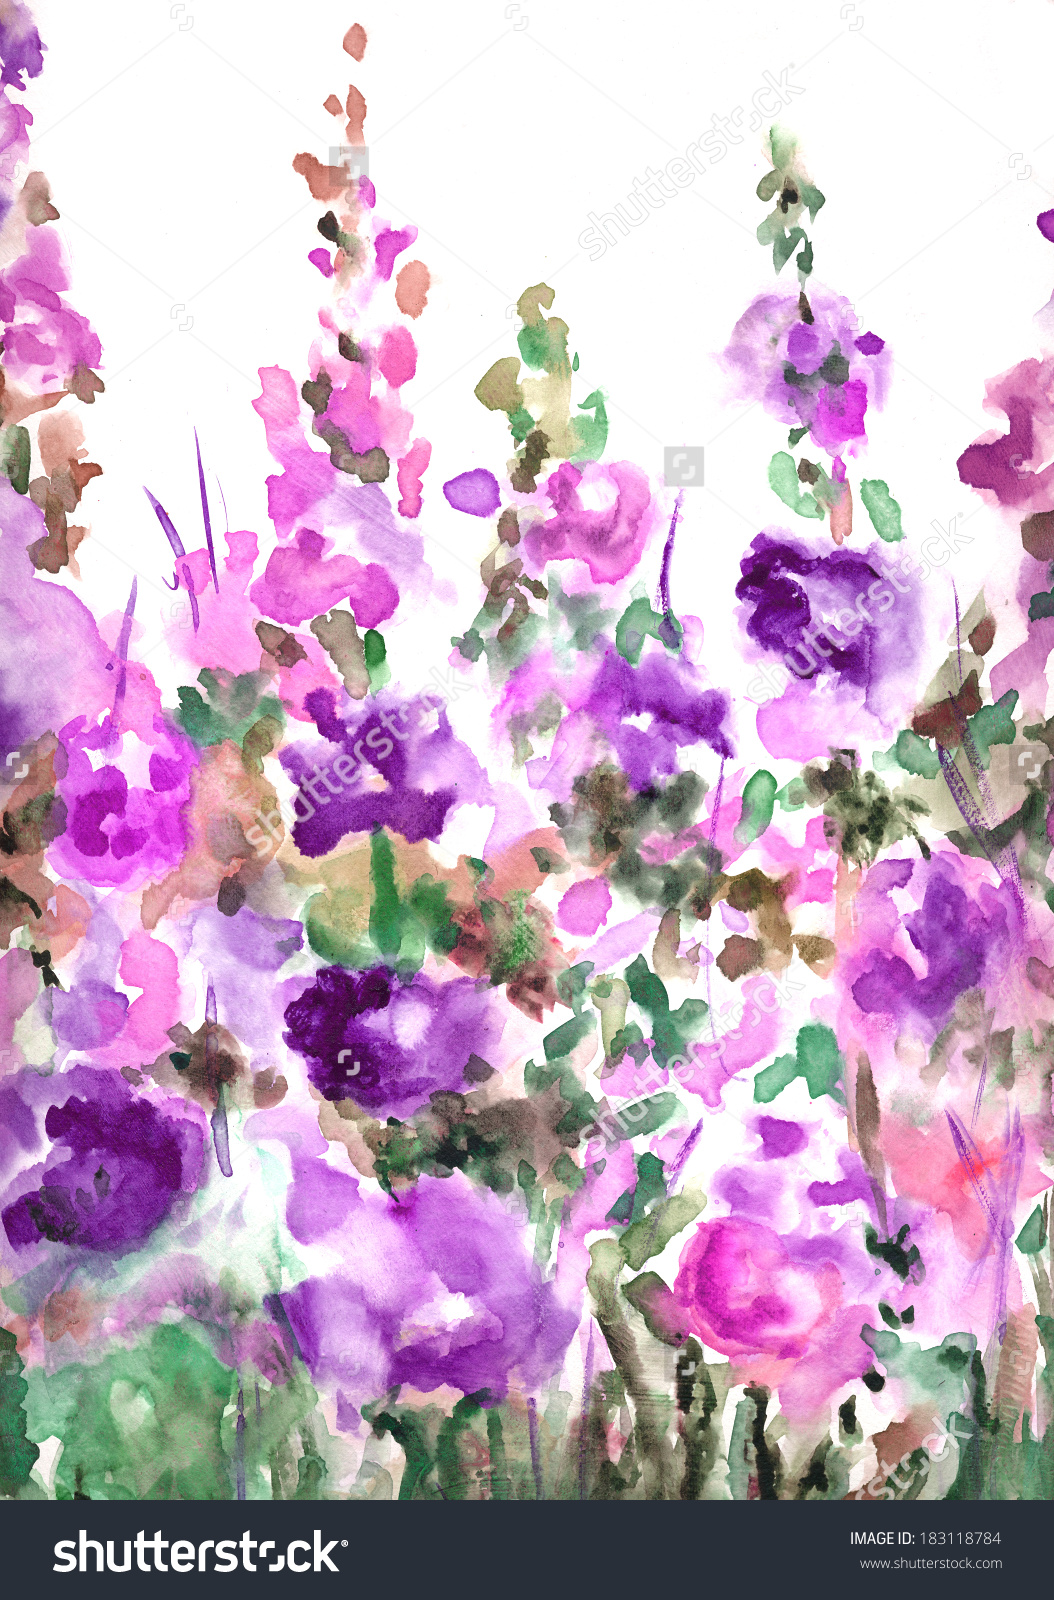 Hollyhocks clipart #3, Download drawings